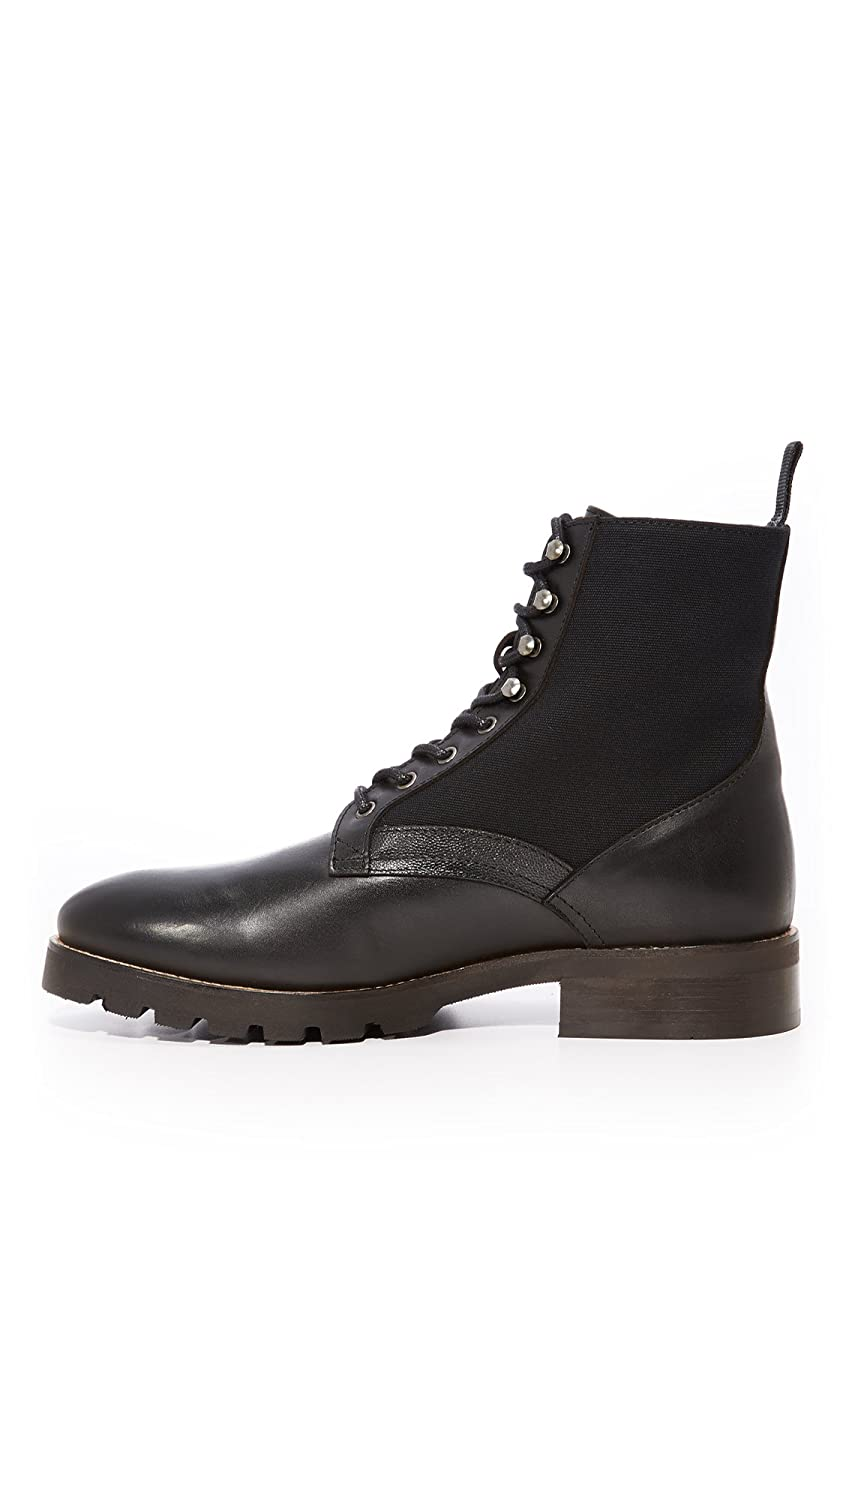 H by Hudson Black Elmore Boots SUp3i